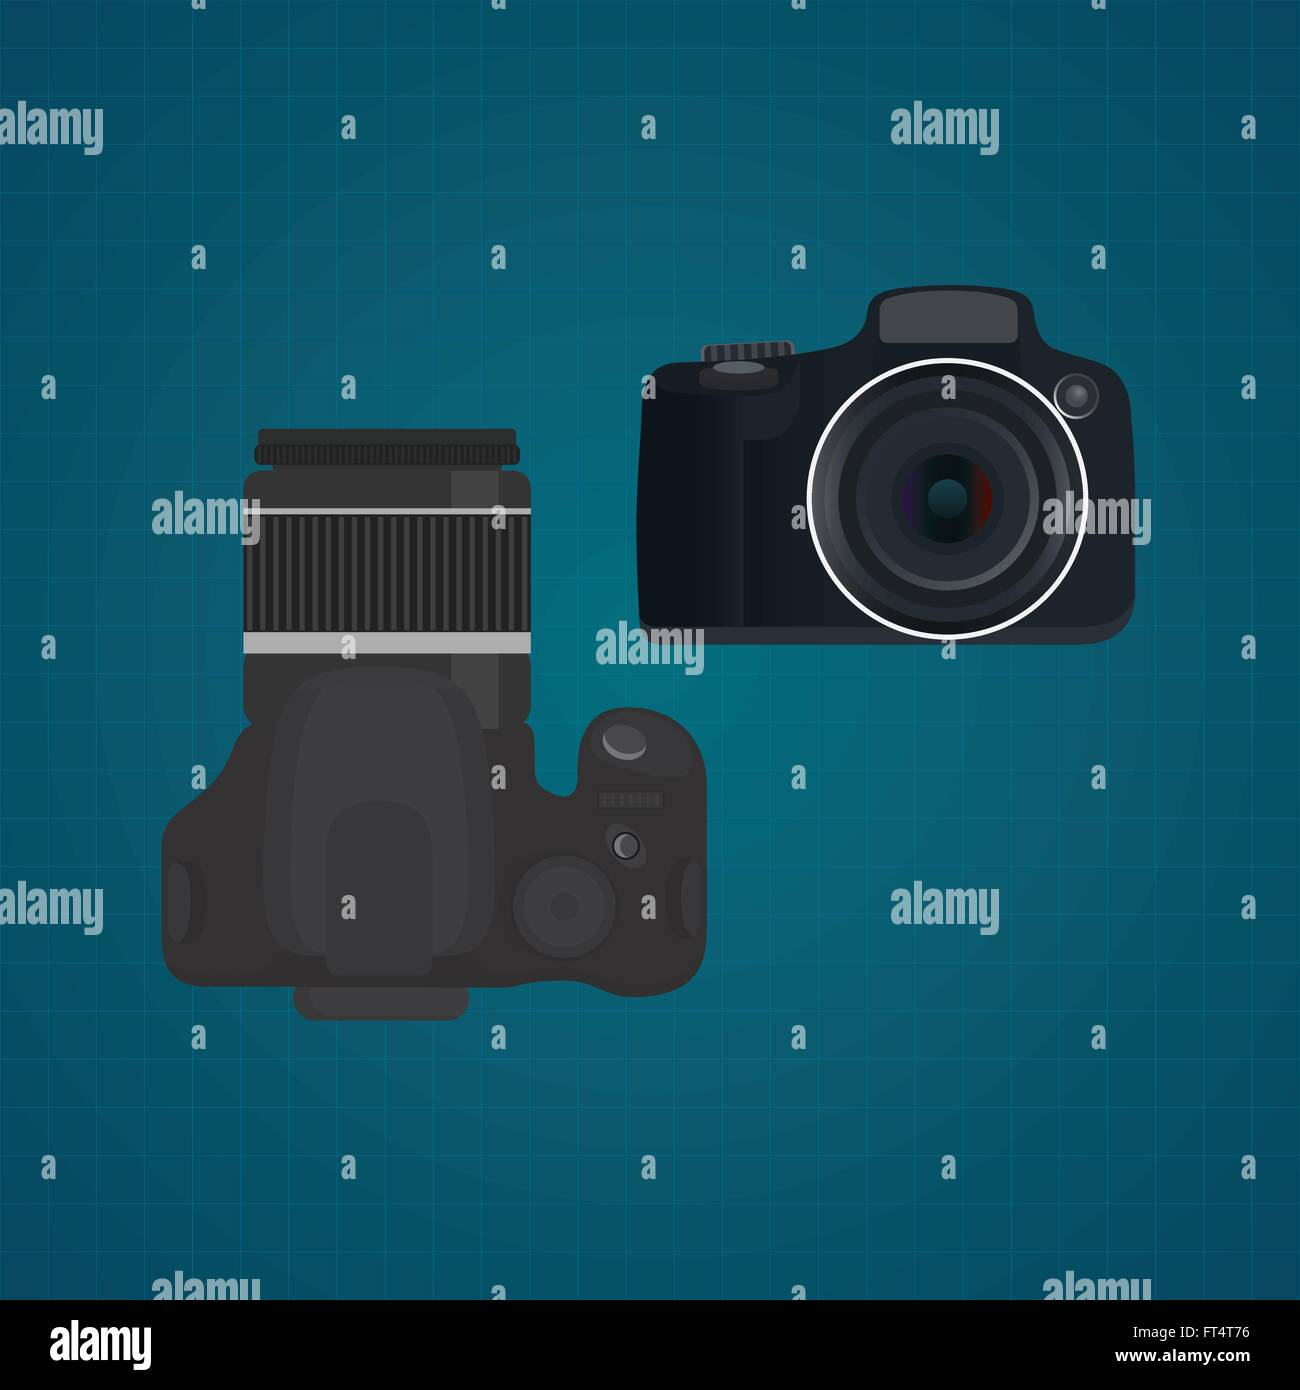 camera slr dslr vector illustration from front and top view - Stock Vector